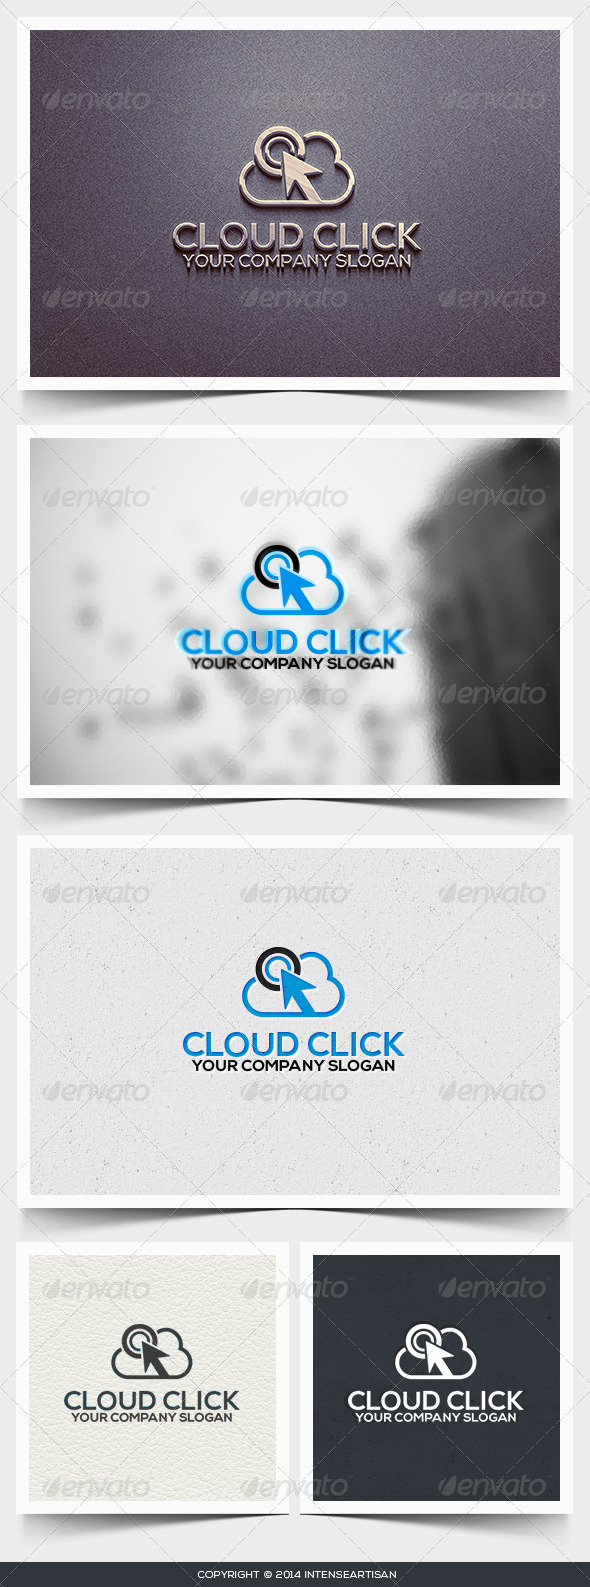 Cloud Click Logo Template - Objects Logo Templates